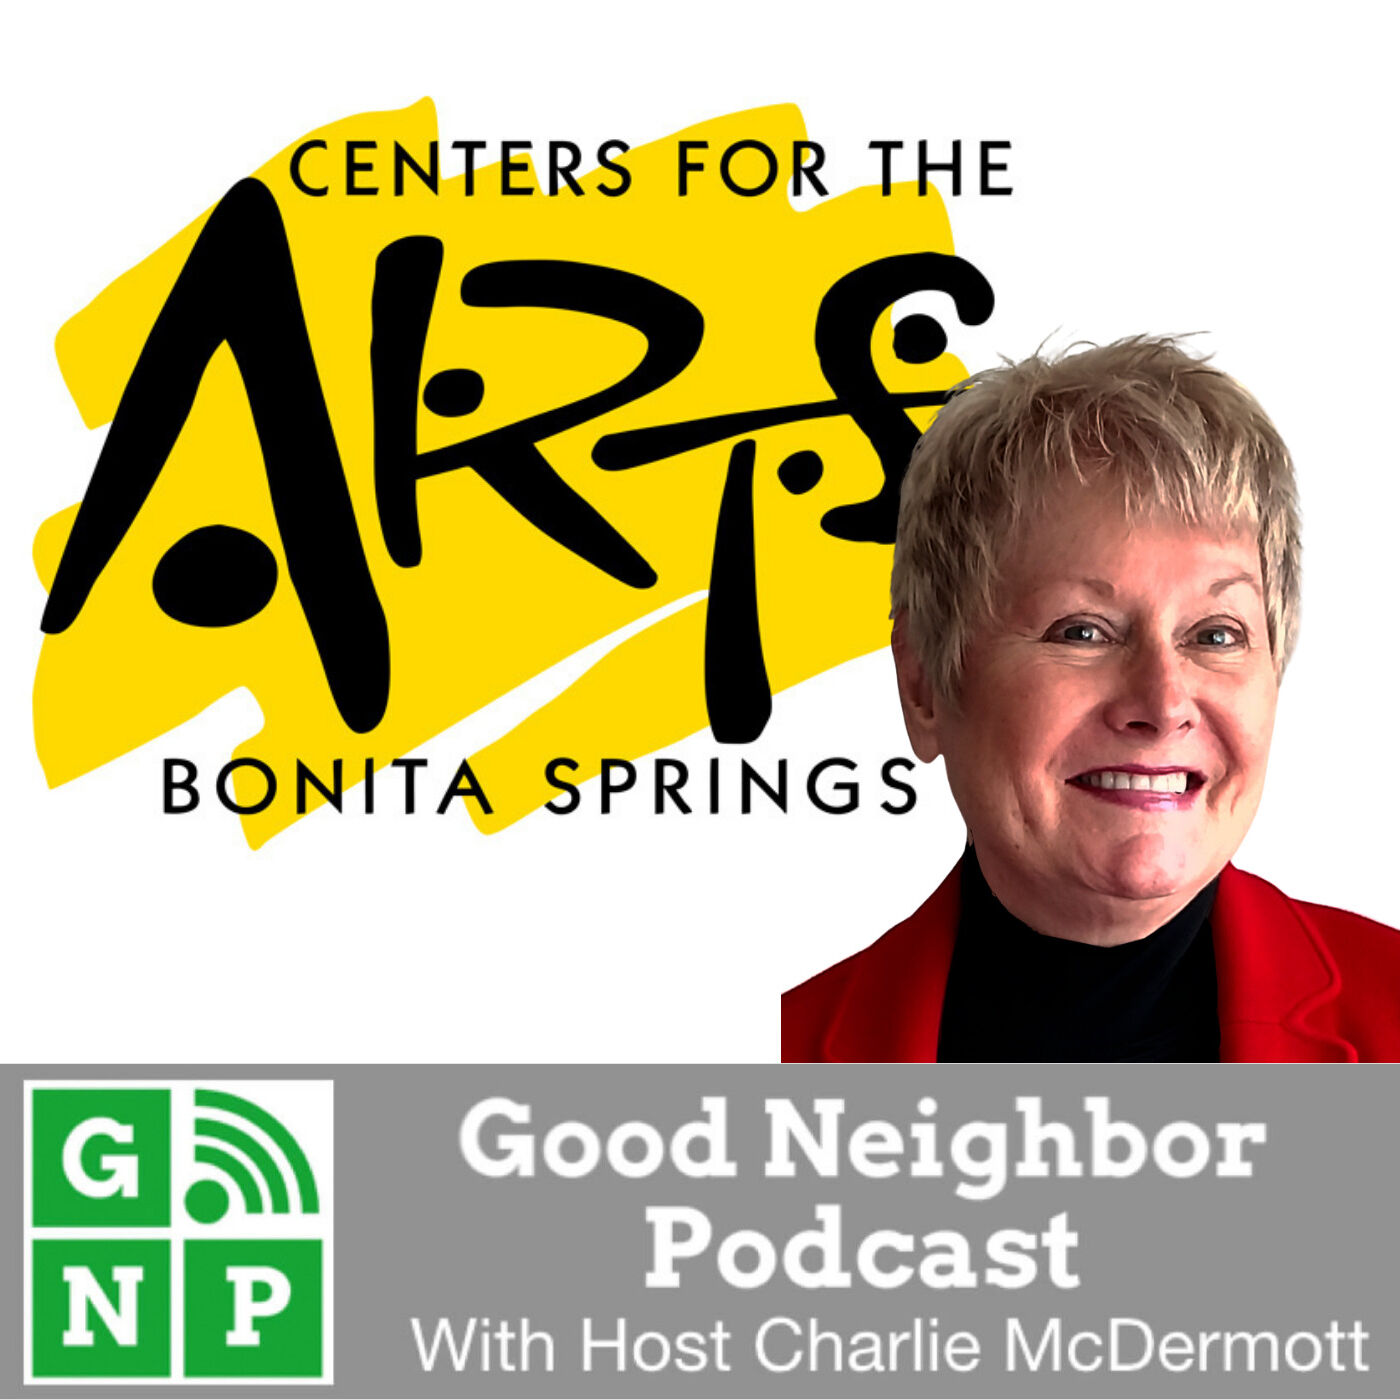 EP #451: Centers for the Arts of Bonita Springs with Susan Bridges